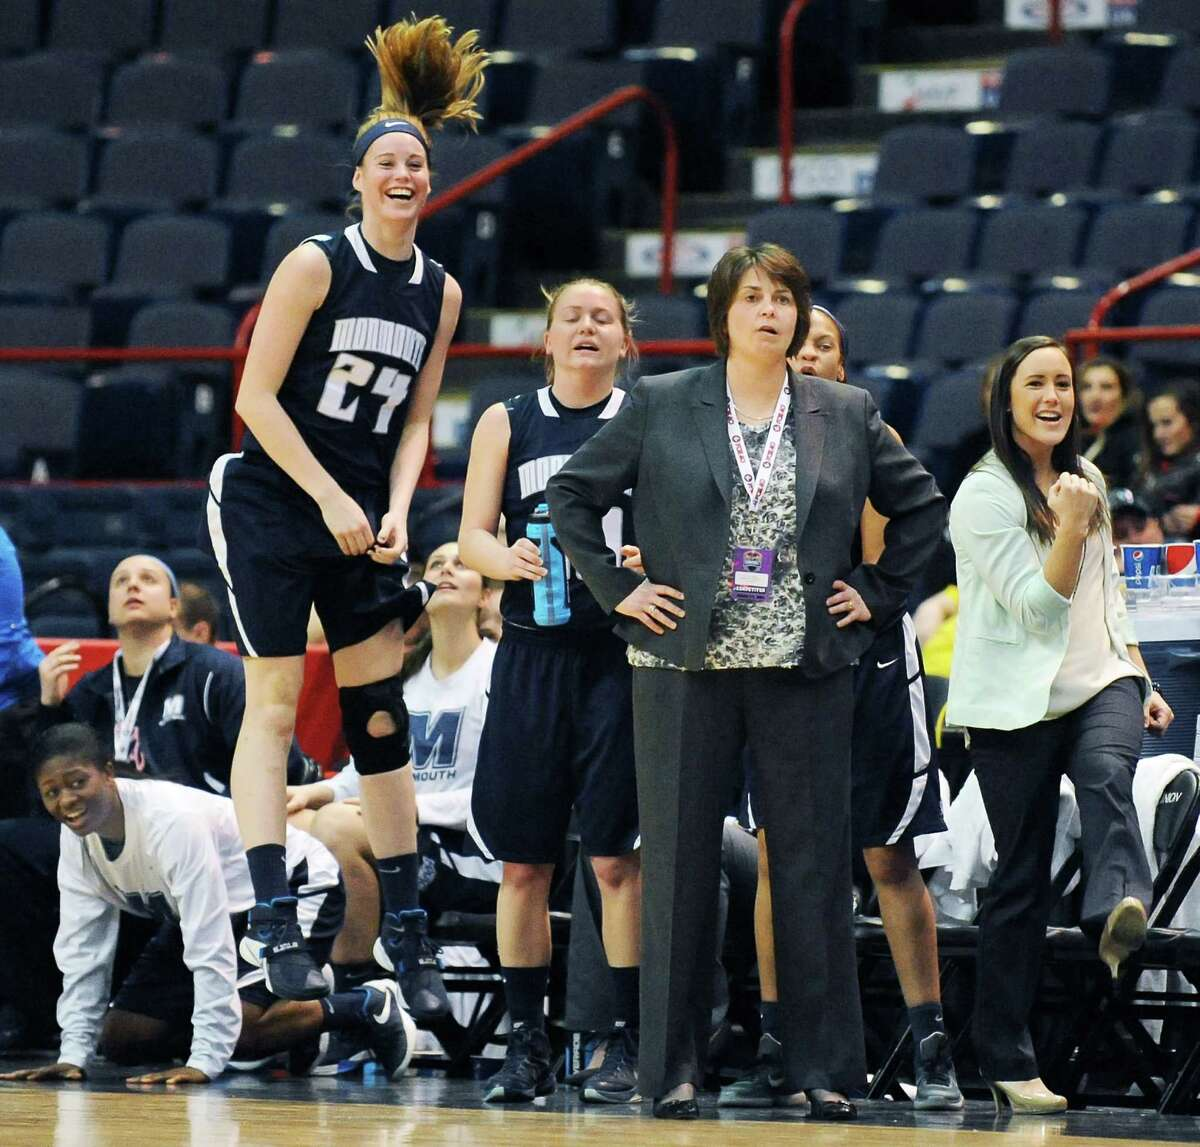 Monmouthhead coach Jenny Palmateer, center, and her bench watch at action during Saturday's MAAC women's quarterfinal against Fairfield at the Times Union Center Saturday March 5, 2016 in Albany, NY. (John Carl D'Annibale / Times Union)